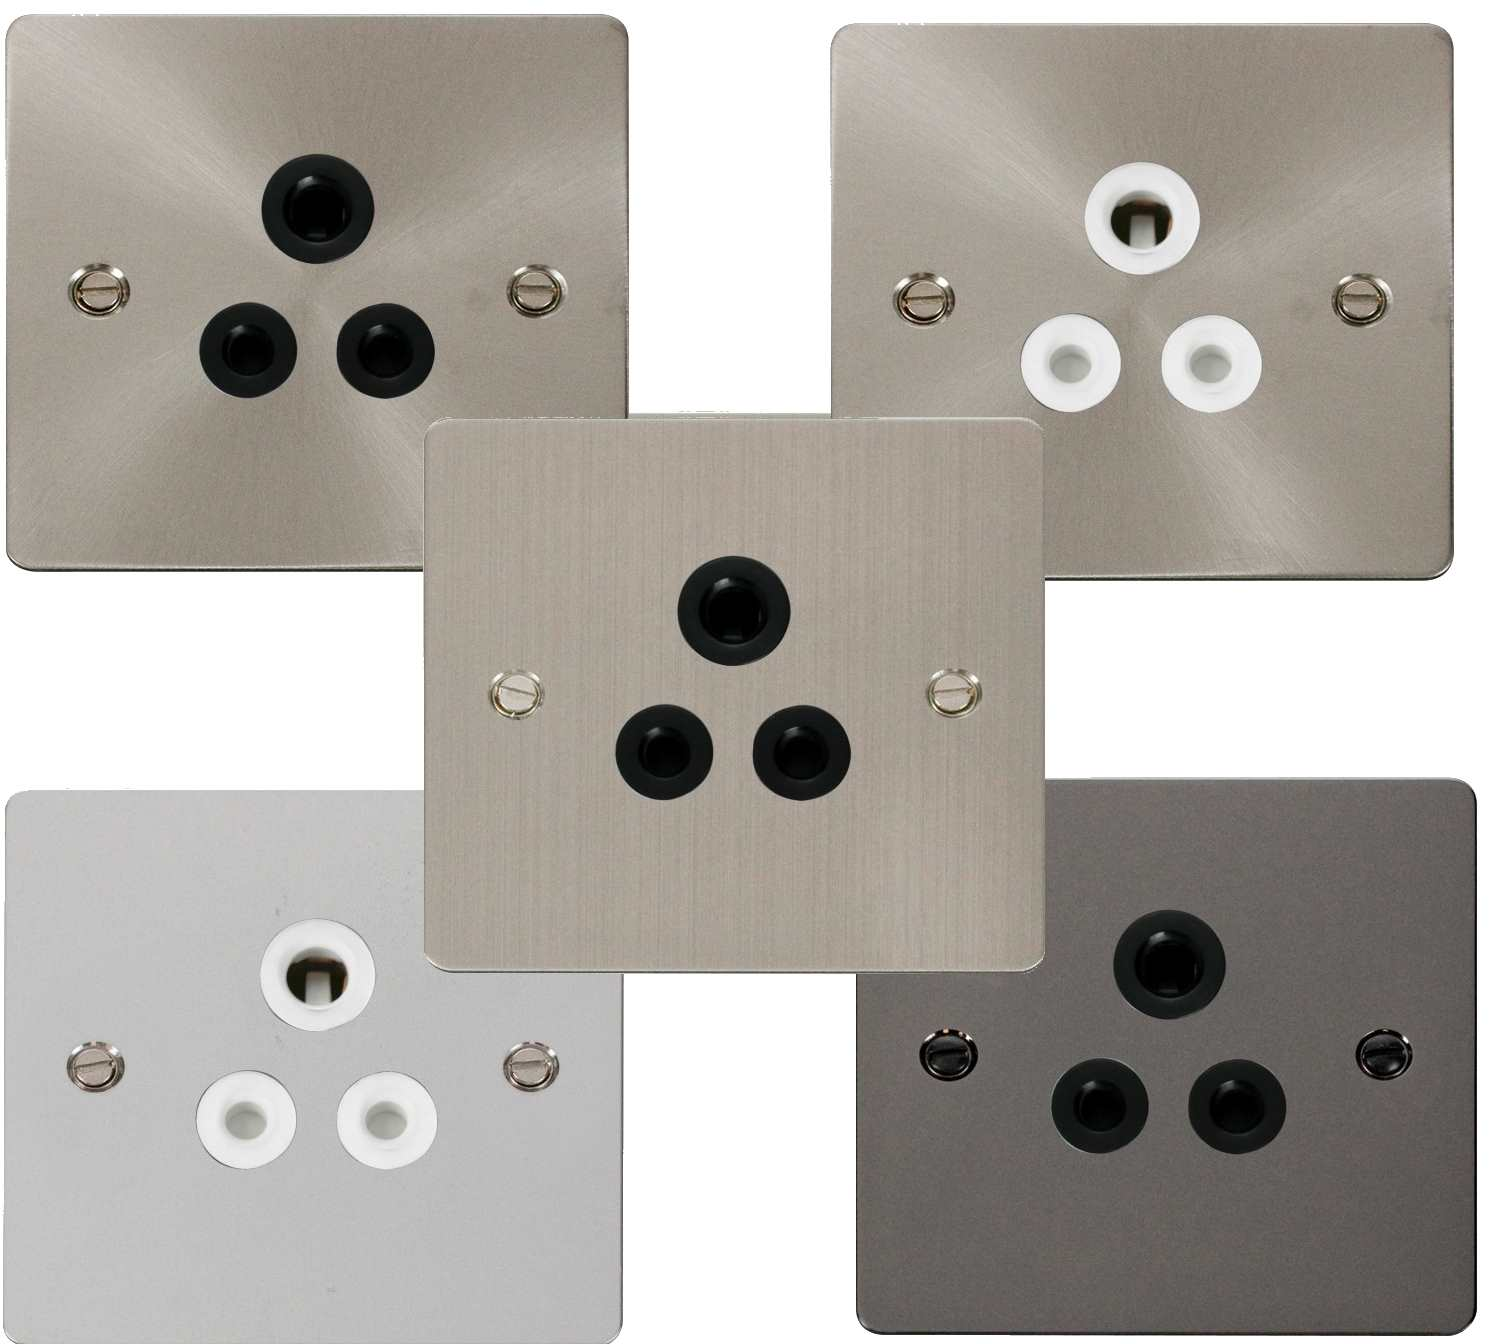 Define Flat 5A Round Pin Socket Outlet